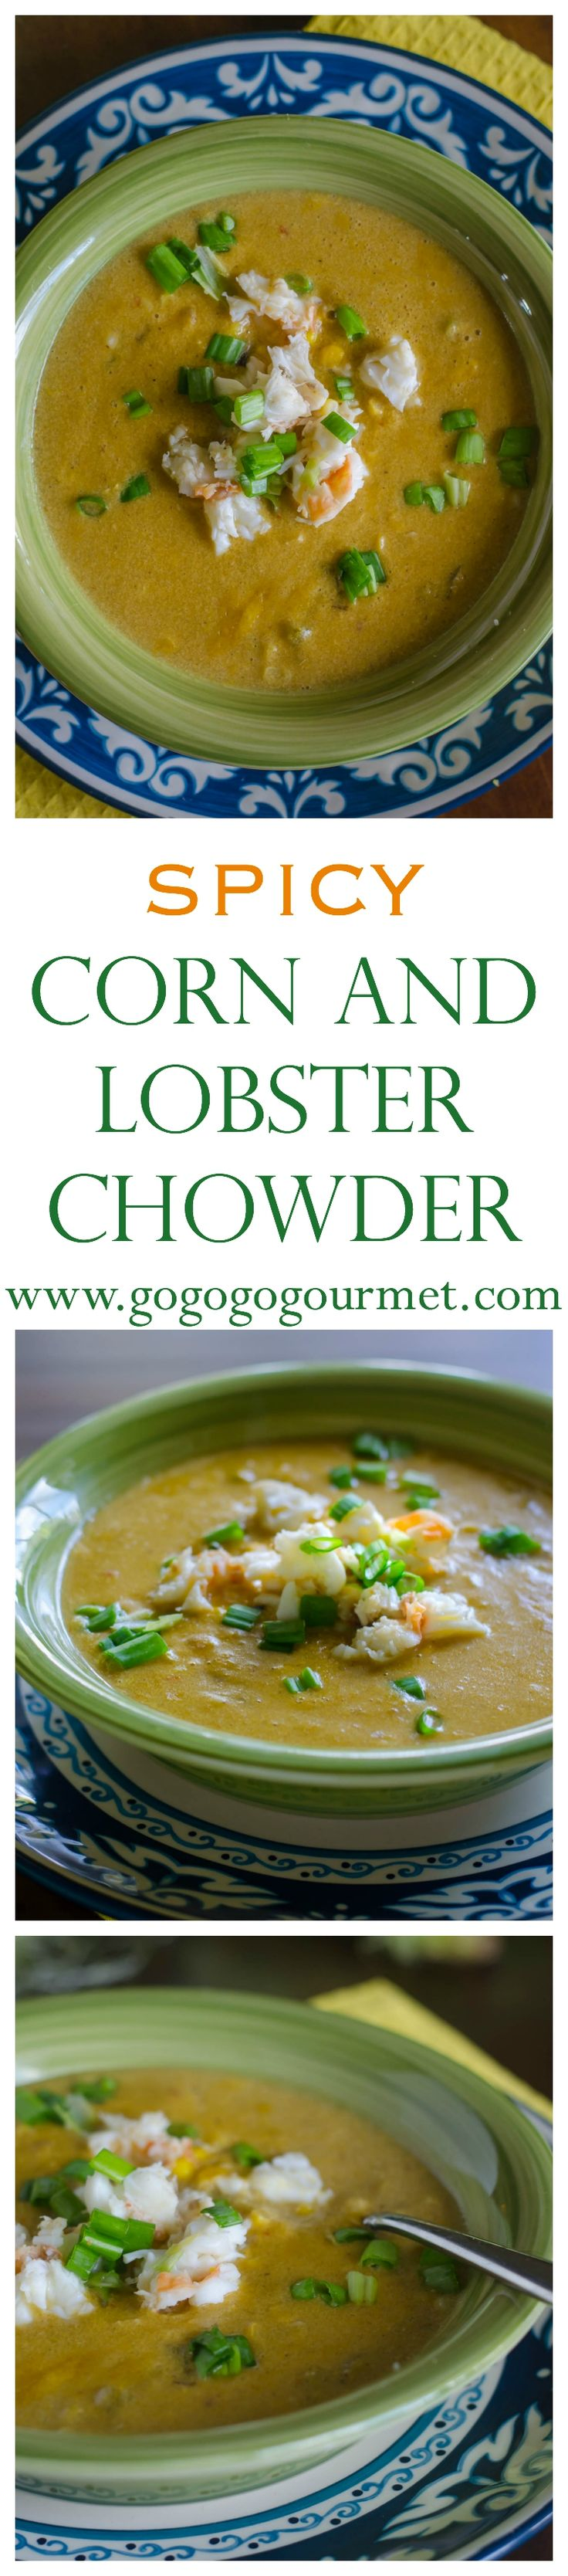 Tons of corn and roasted peppers with tender lobster... you can't go wrong! Spicy and creamy Corn and Lobster Chowder.   Go Go Go Gourmet @gogogogourmet